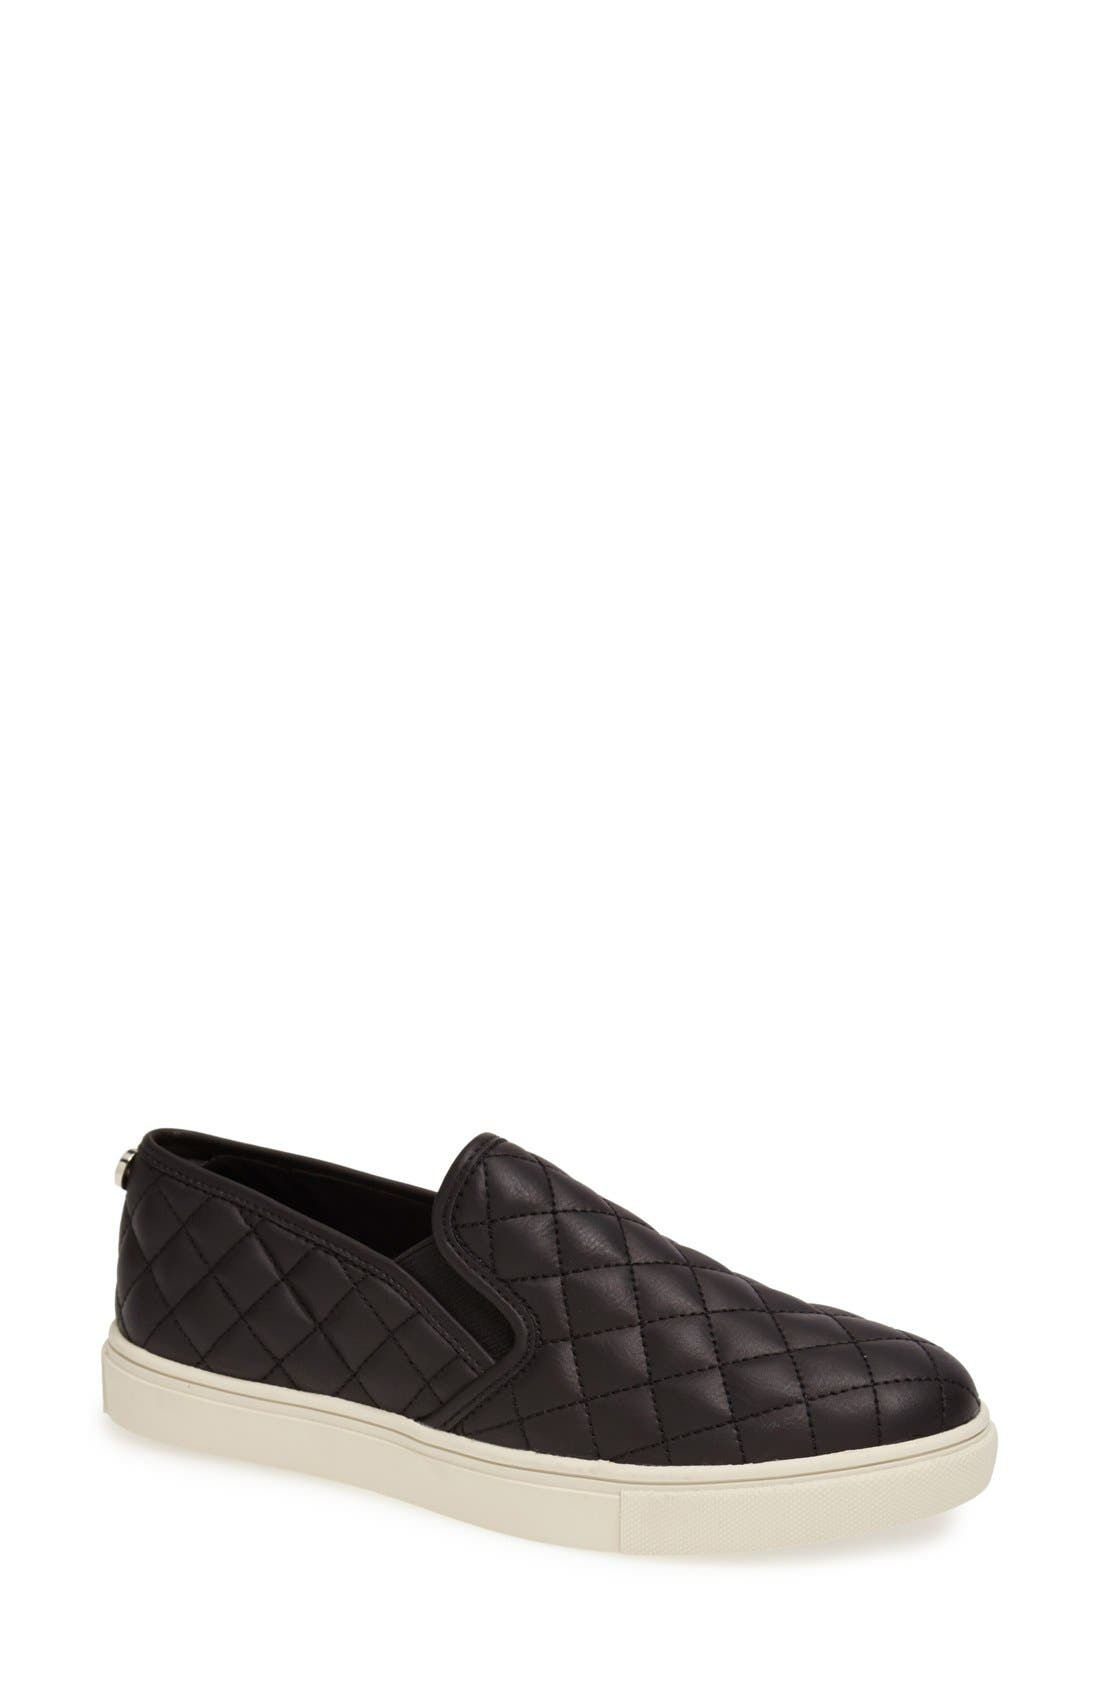 Ecentrcq Sneaker,                         Main,                         color, BLACK FAUX LEATHER